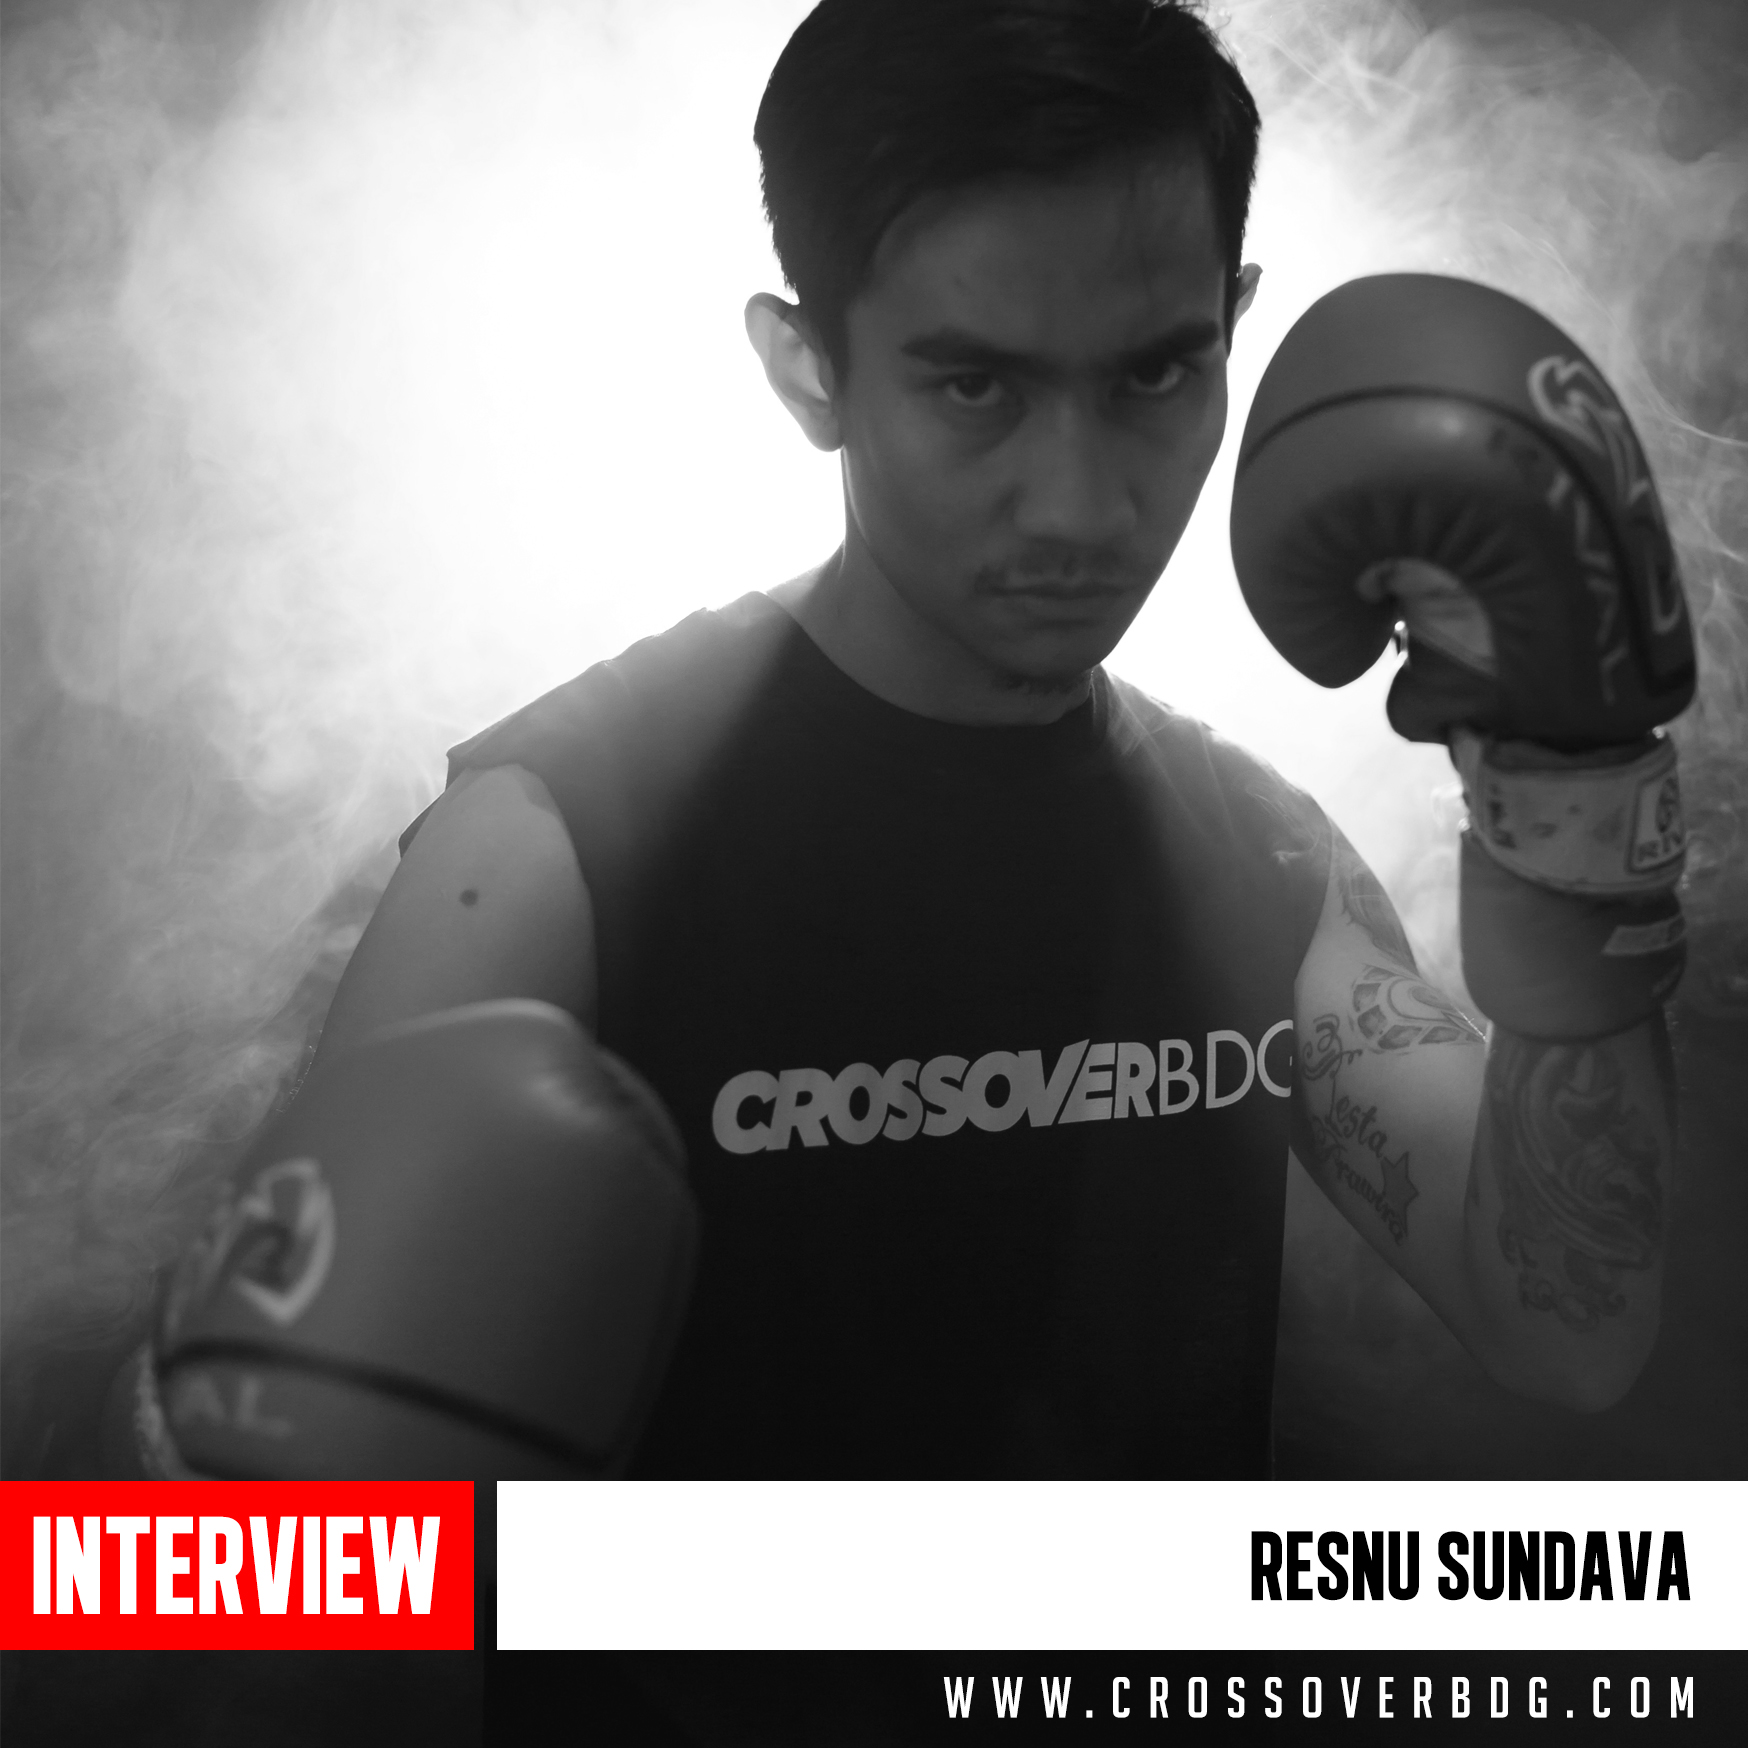 INTERVIEW: RESNU SUNDAVA FROM RUMAH CEMARA BOXING CAMP image